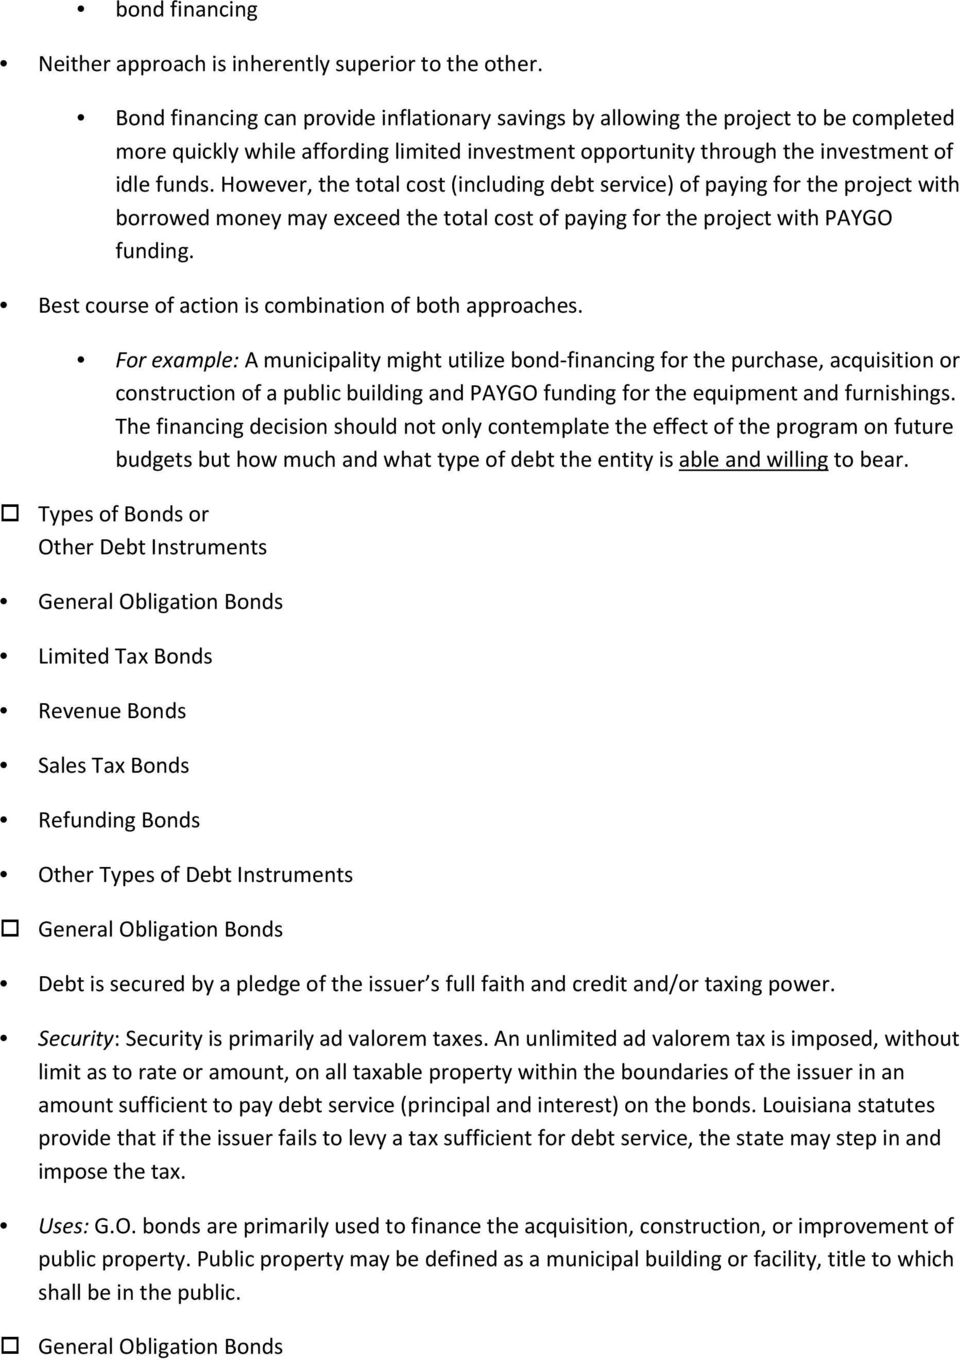 However, the total cost (including debt service) of paying for the project with borrowed money may exceed the total cost of paying for the project with PAYGO funding.